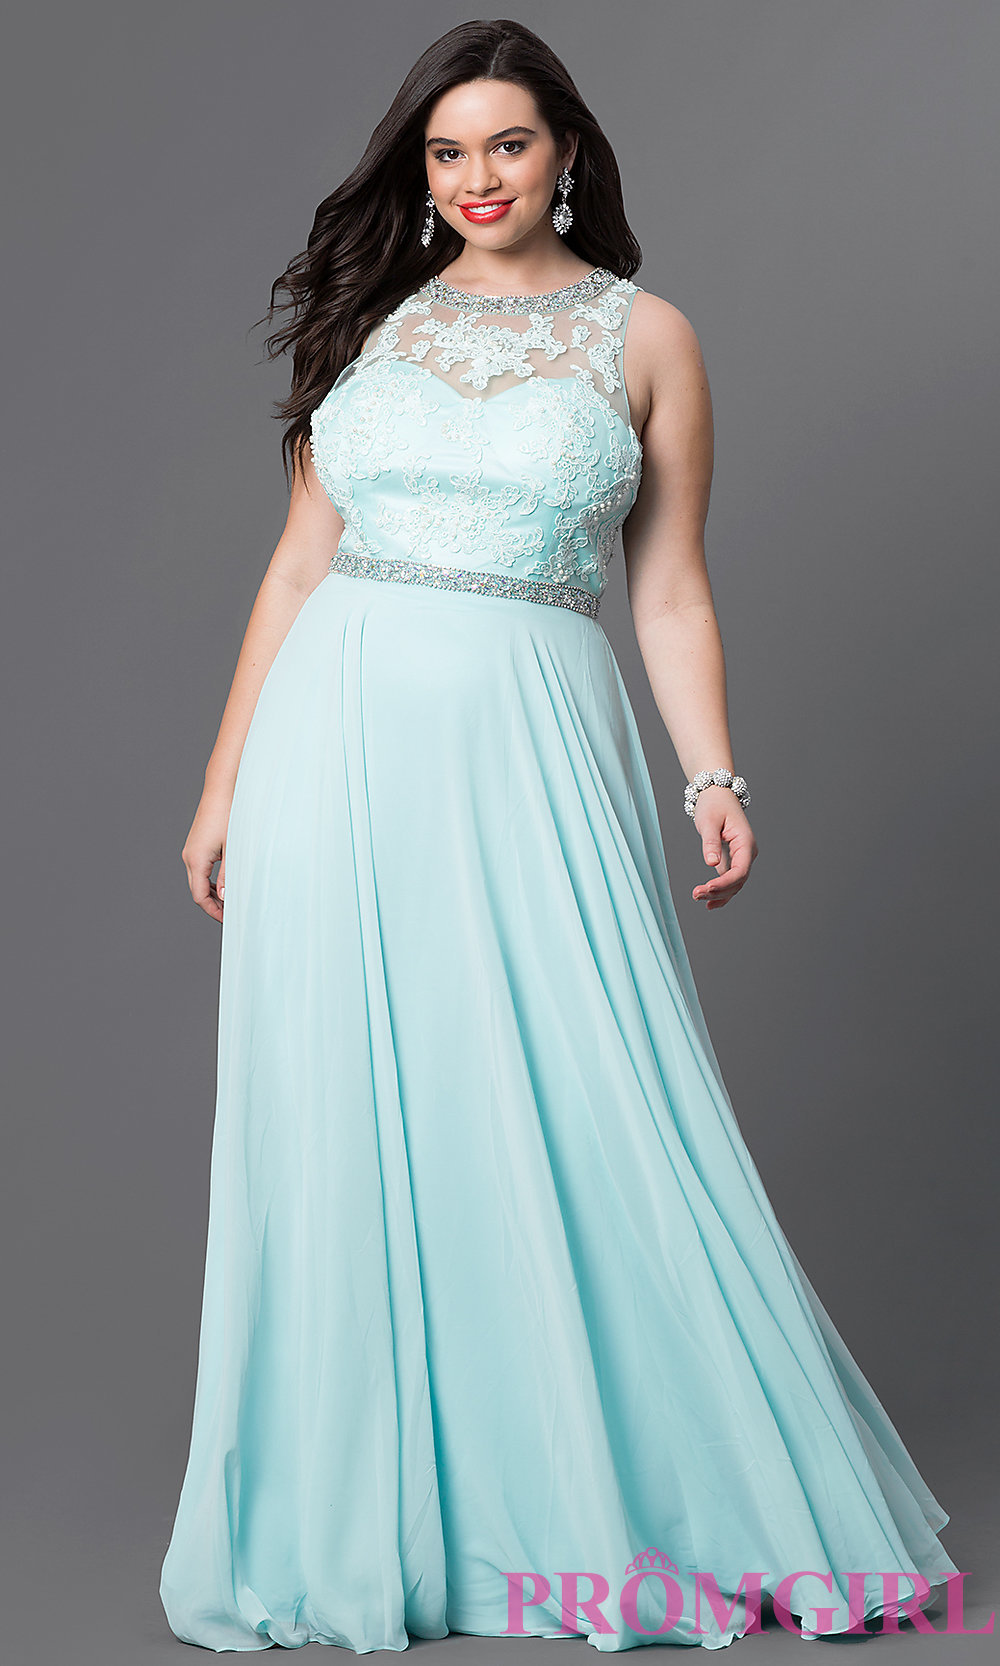 Lace-Illusion Long Plus-Size Prom Dress - PromGirl